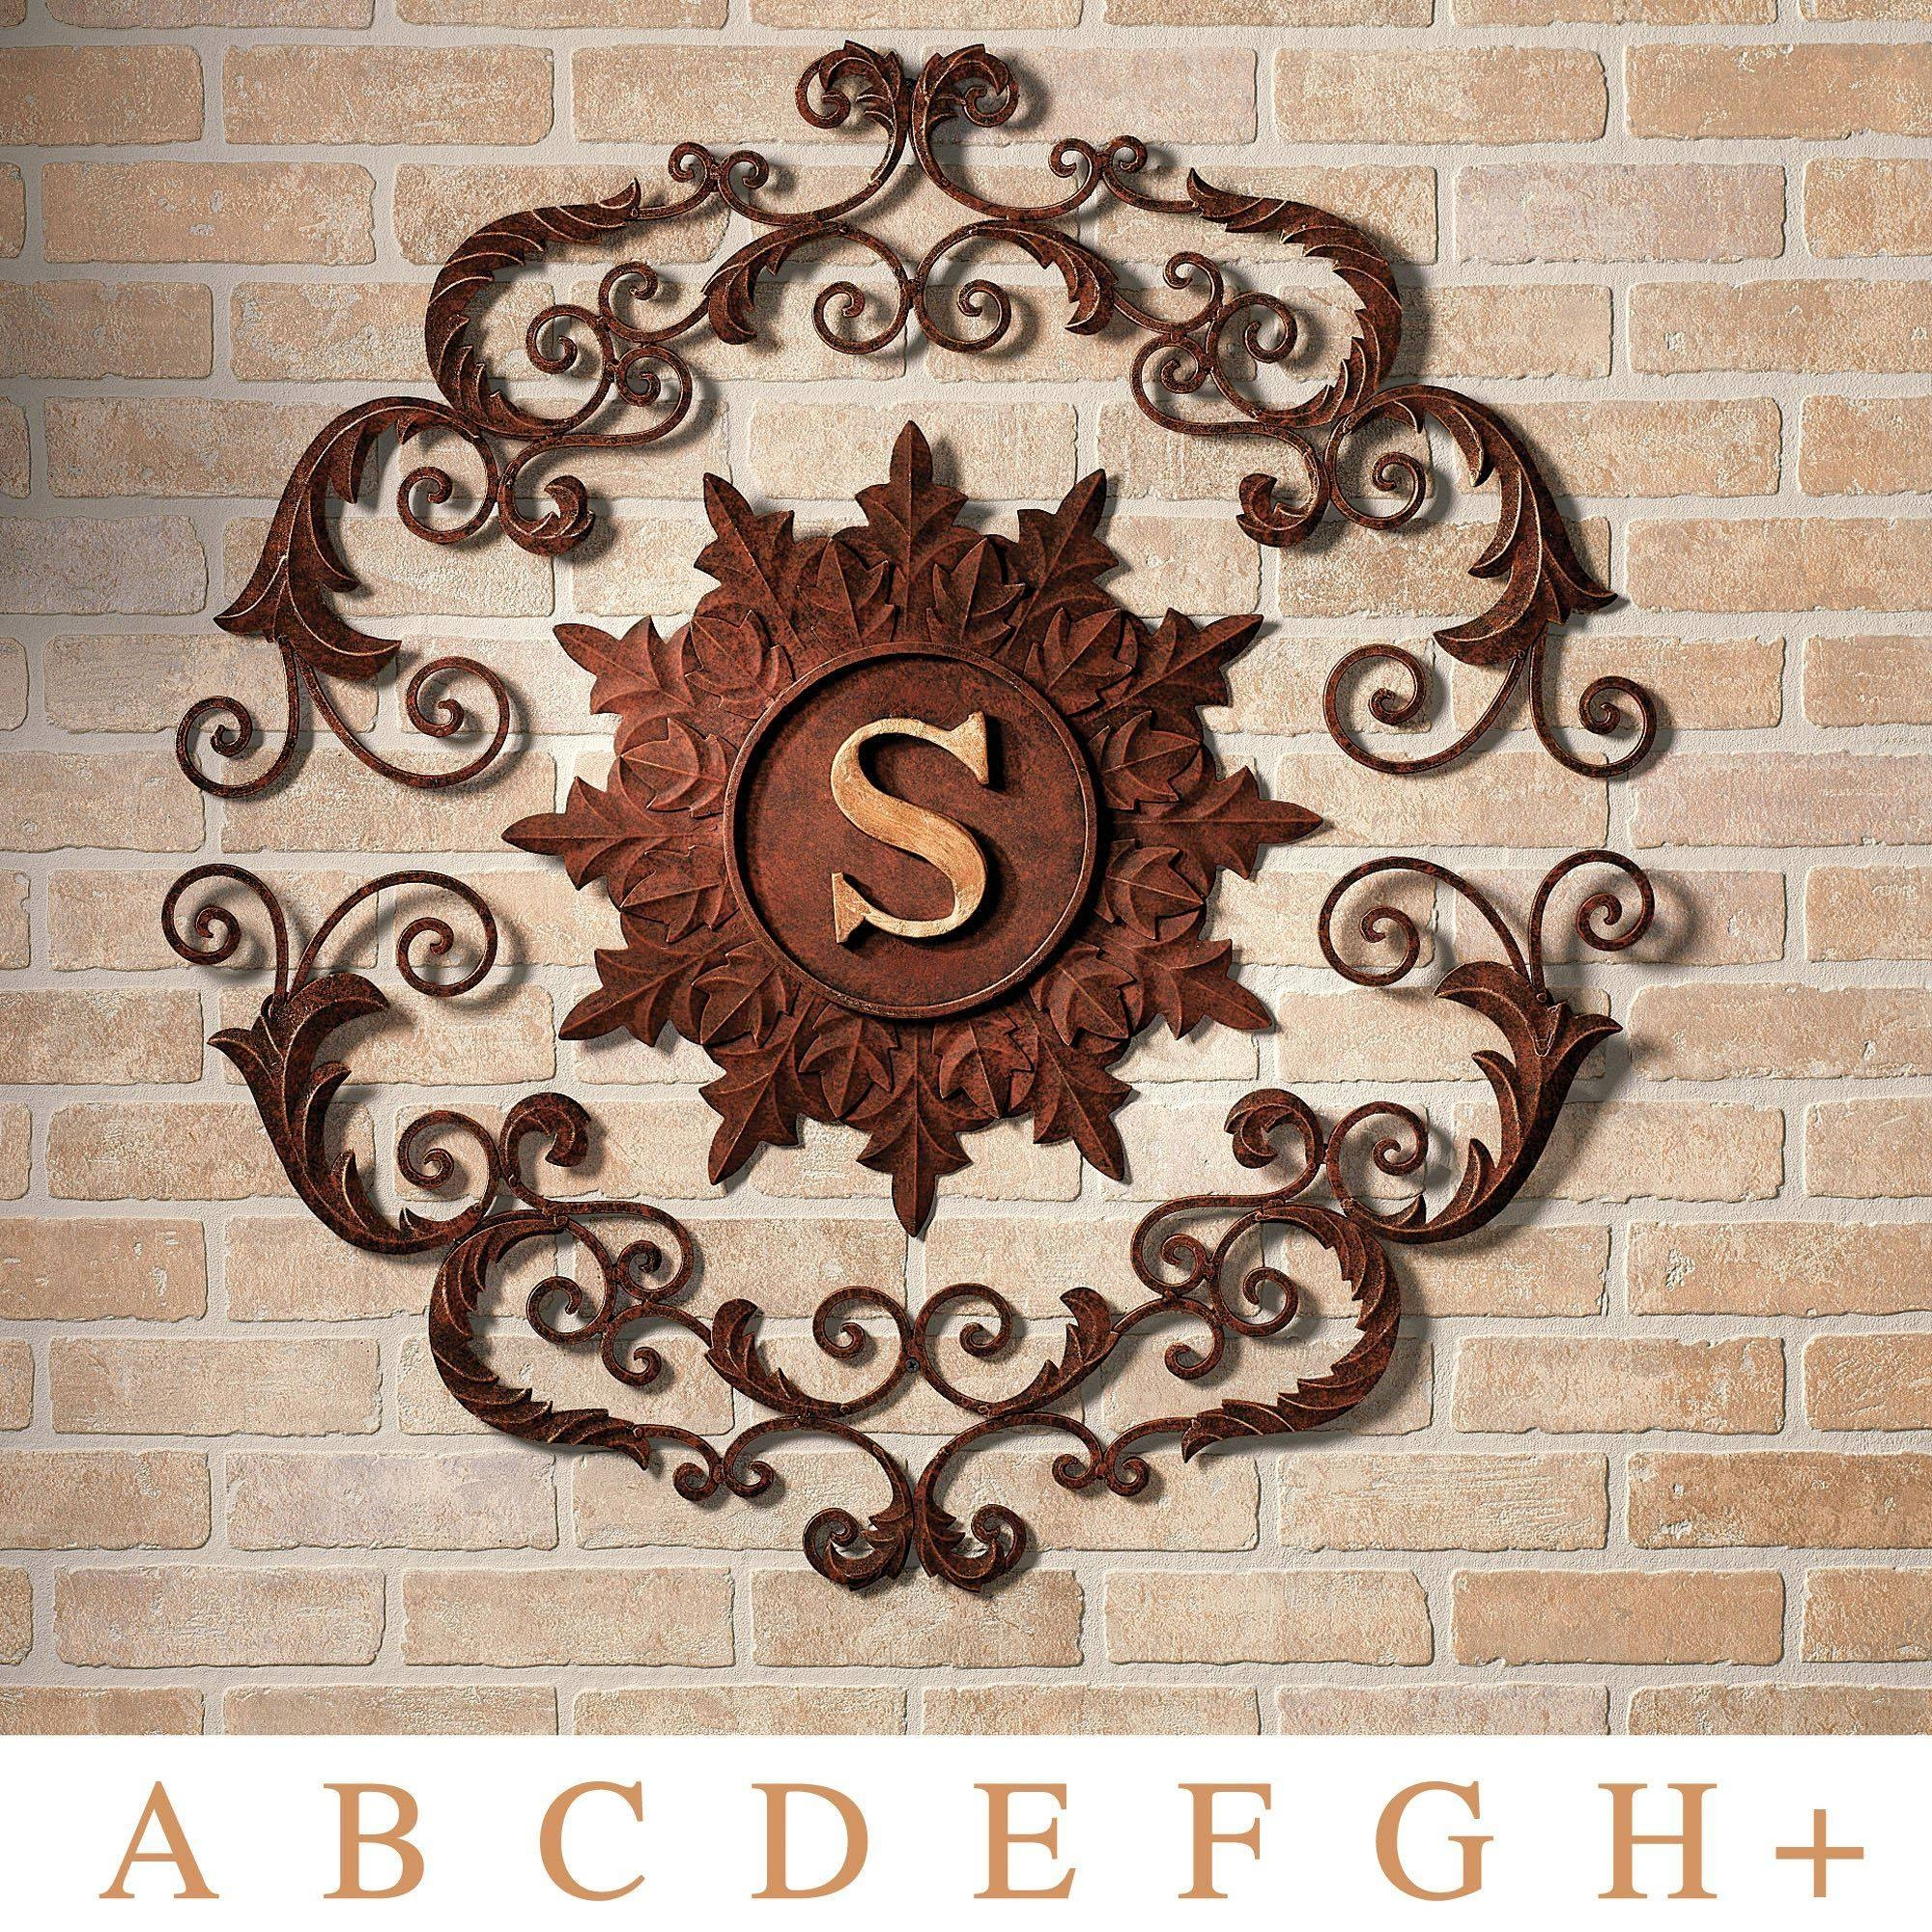 Kingston Monogram Metal Wall Grille Pertaining To Latest Outside Metal Wall Art (View 9 of 20)